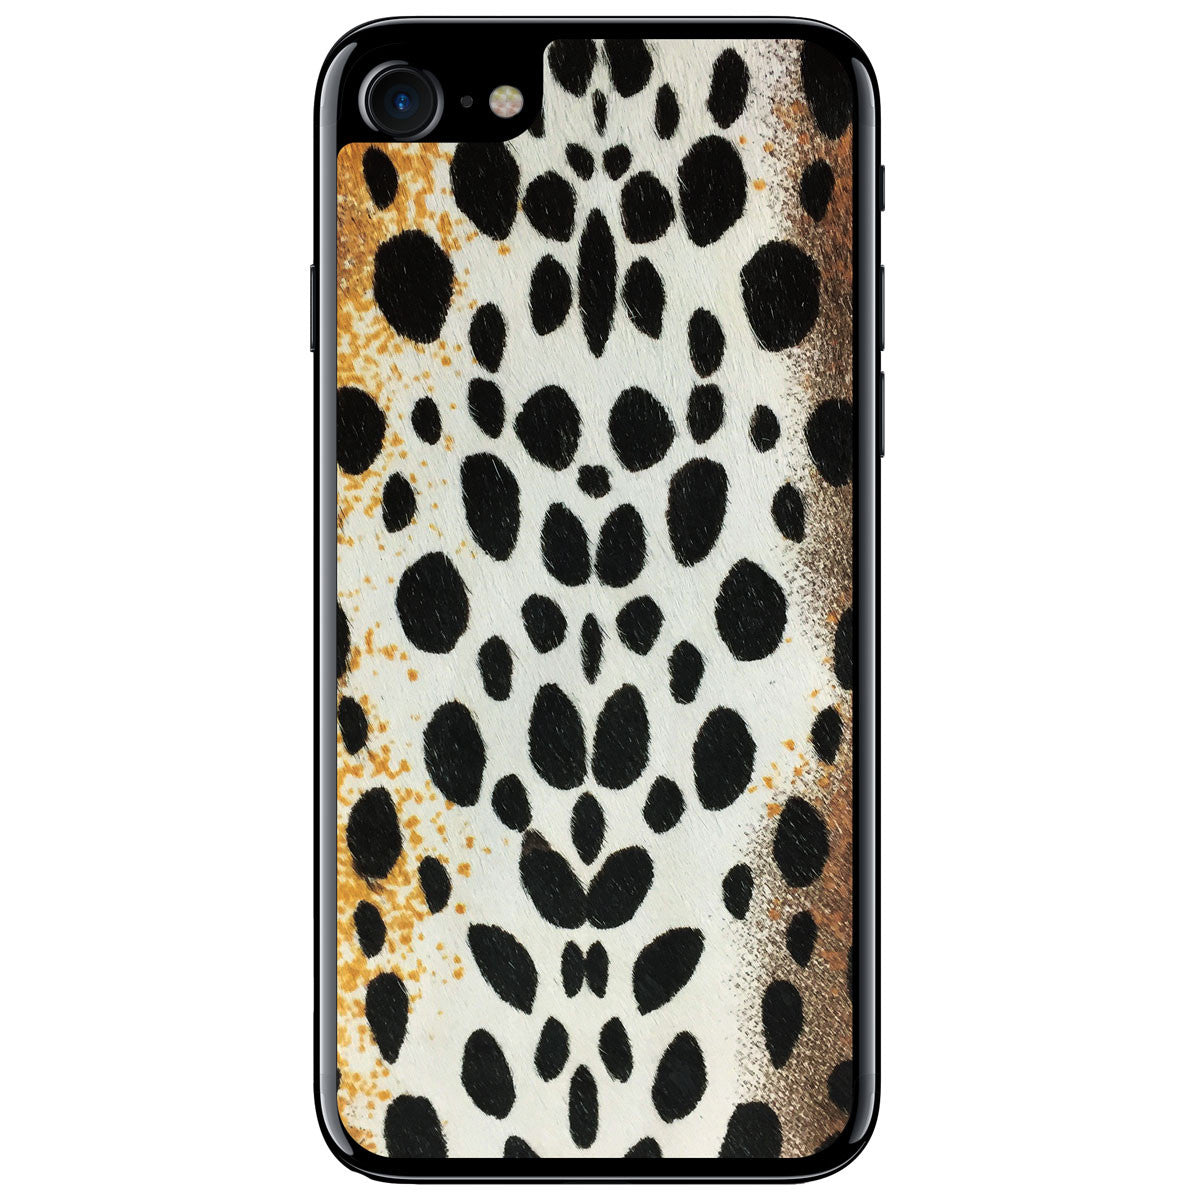 White Cheetah Print Pony Hair iPhone 8 Leather Skin